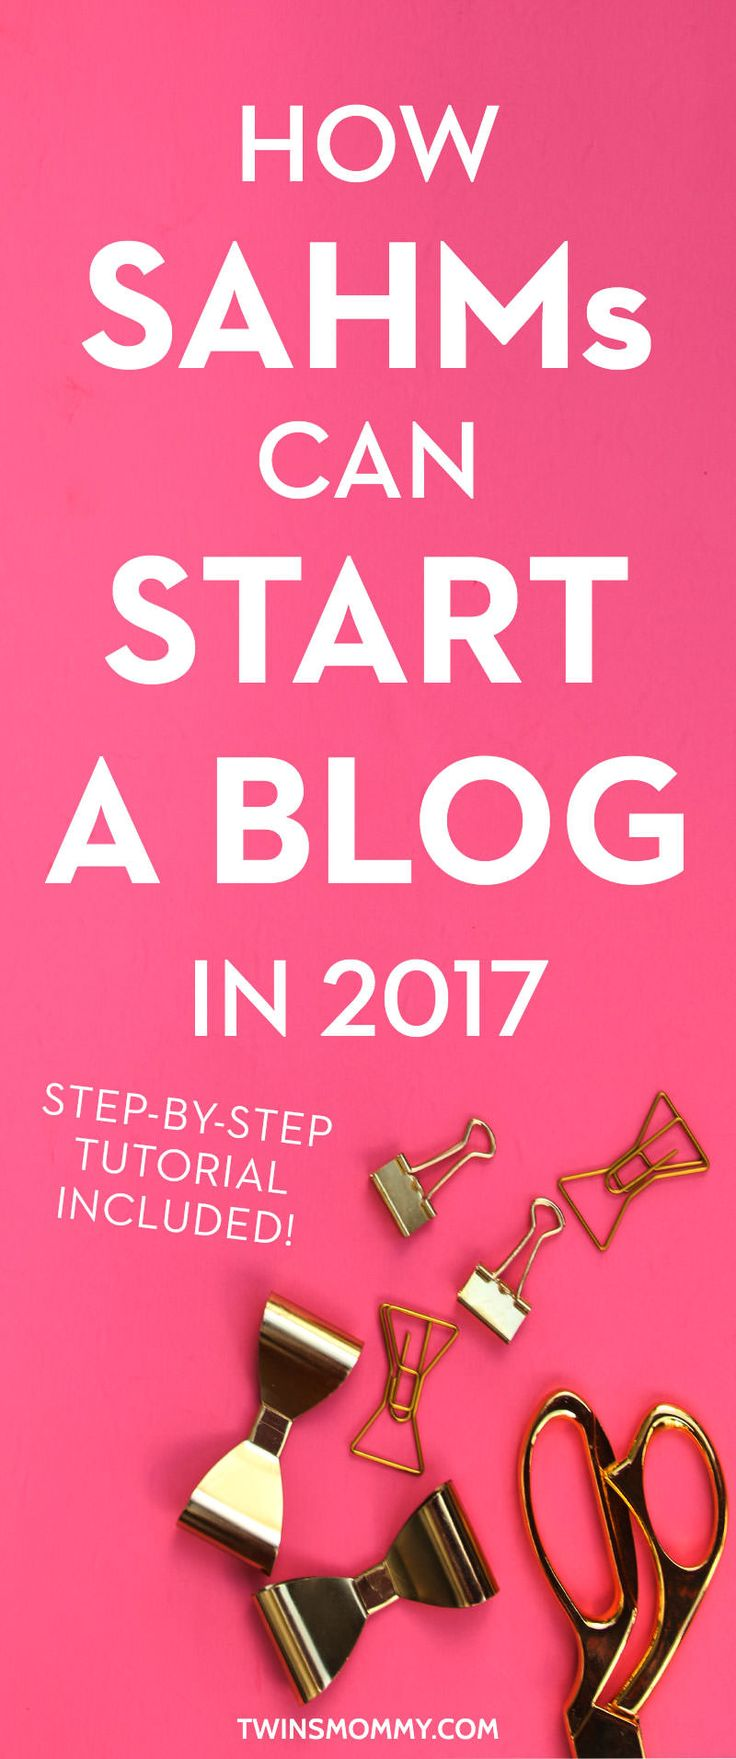 How to Start a Mom Blog for the New Beginner | I can't believe how great this step-by-step tutorial really is. If you really want to start a blog then this guide will get you up and running in under 10 minutes. Your self-hosted WordPress blog will have a niche, domain and theme! Whether you want to use SiteGround, HostGator or Bluehost, click here to check out this start a blog tutorial.| create a website | start a website.